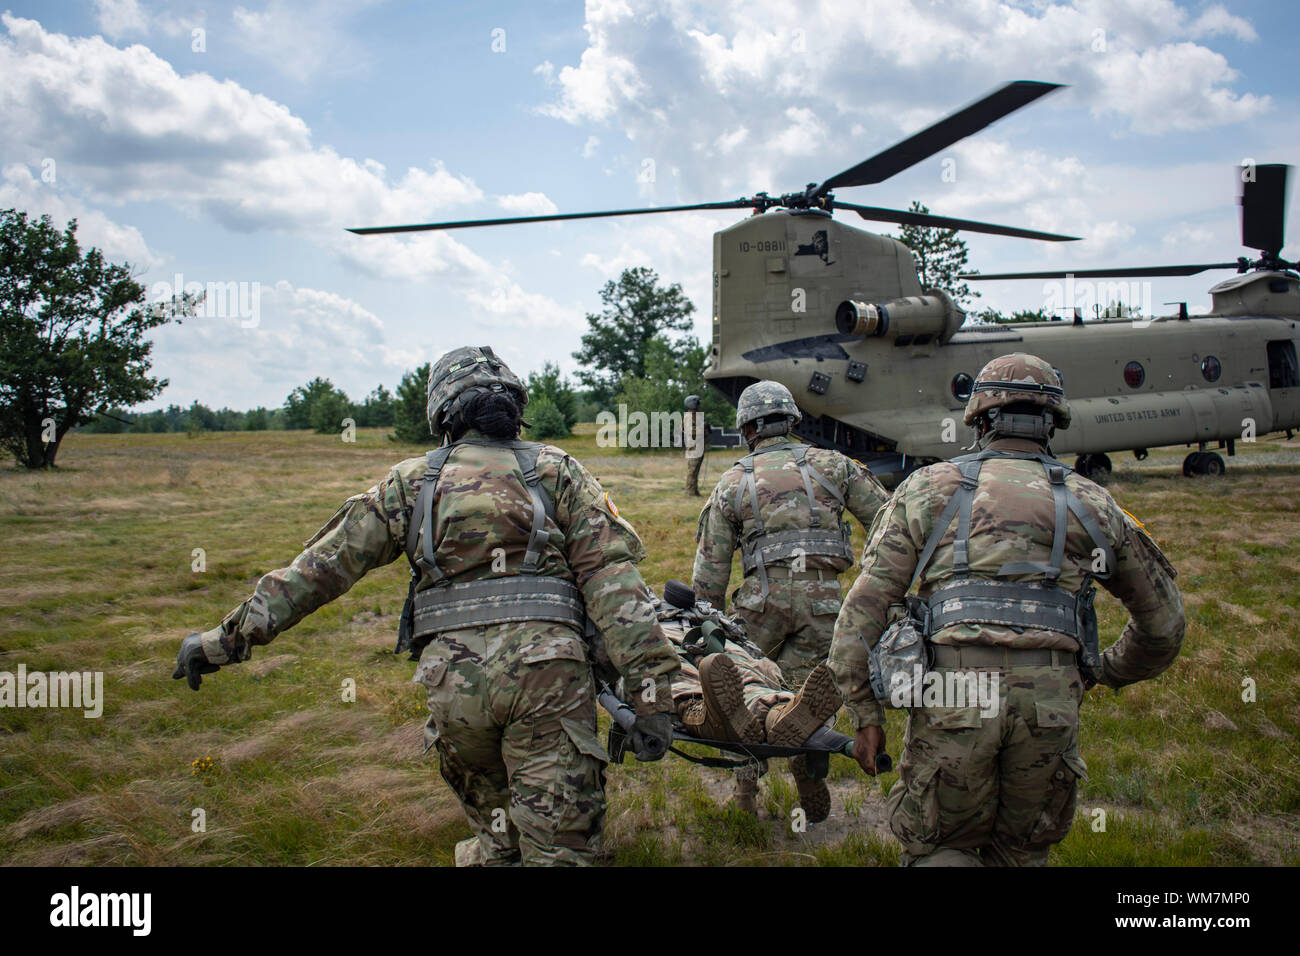 New York National Guard medics assigned to Headquarters Battery of the 1st Battalion, 258th Field Artillery conduct mass casualty training during an evacuation exercise with CH-47 Chinook helicopter aircrews from B Company, 3rd Battalion, 126th Aviation during the two units' annual training at Fort Drum, N.Y. July 29th, 2019. U.S. Army National Guard photo by Sgt. Matthew Gunther. Stock Photo